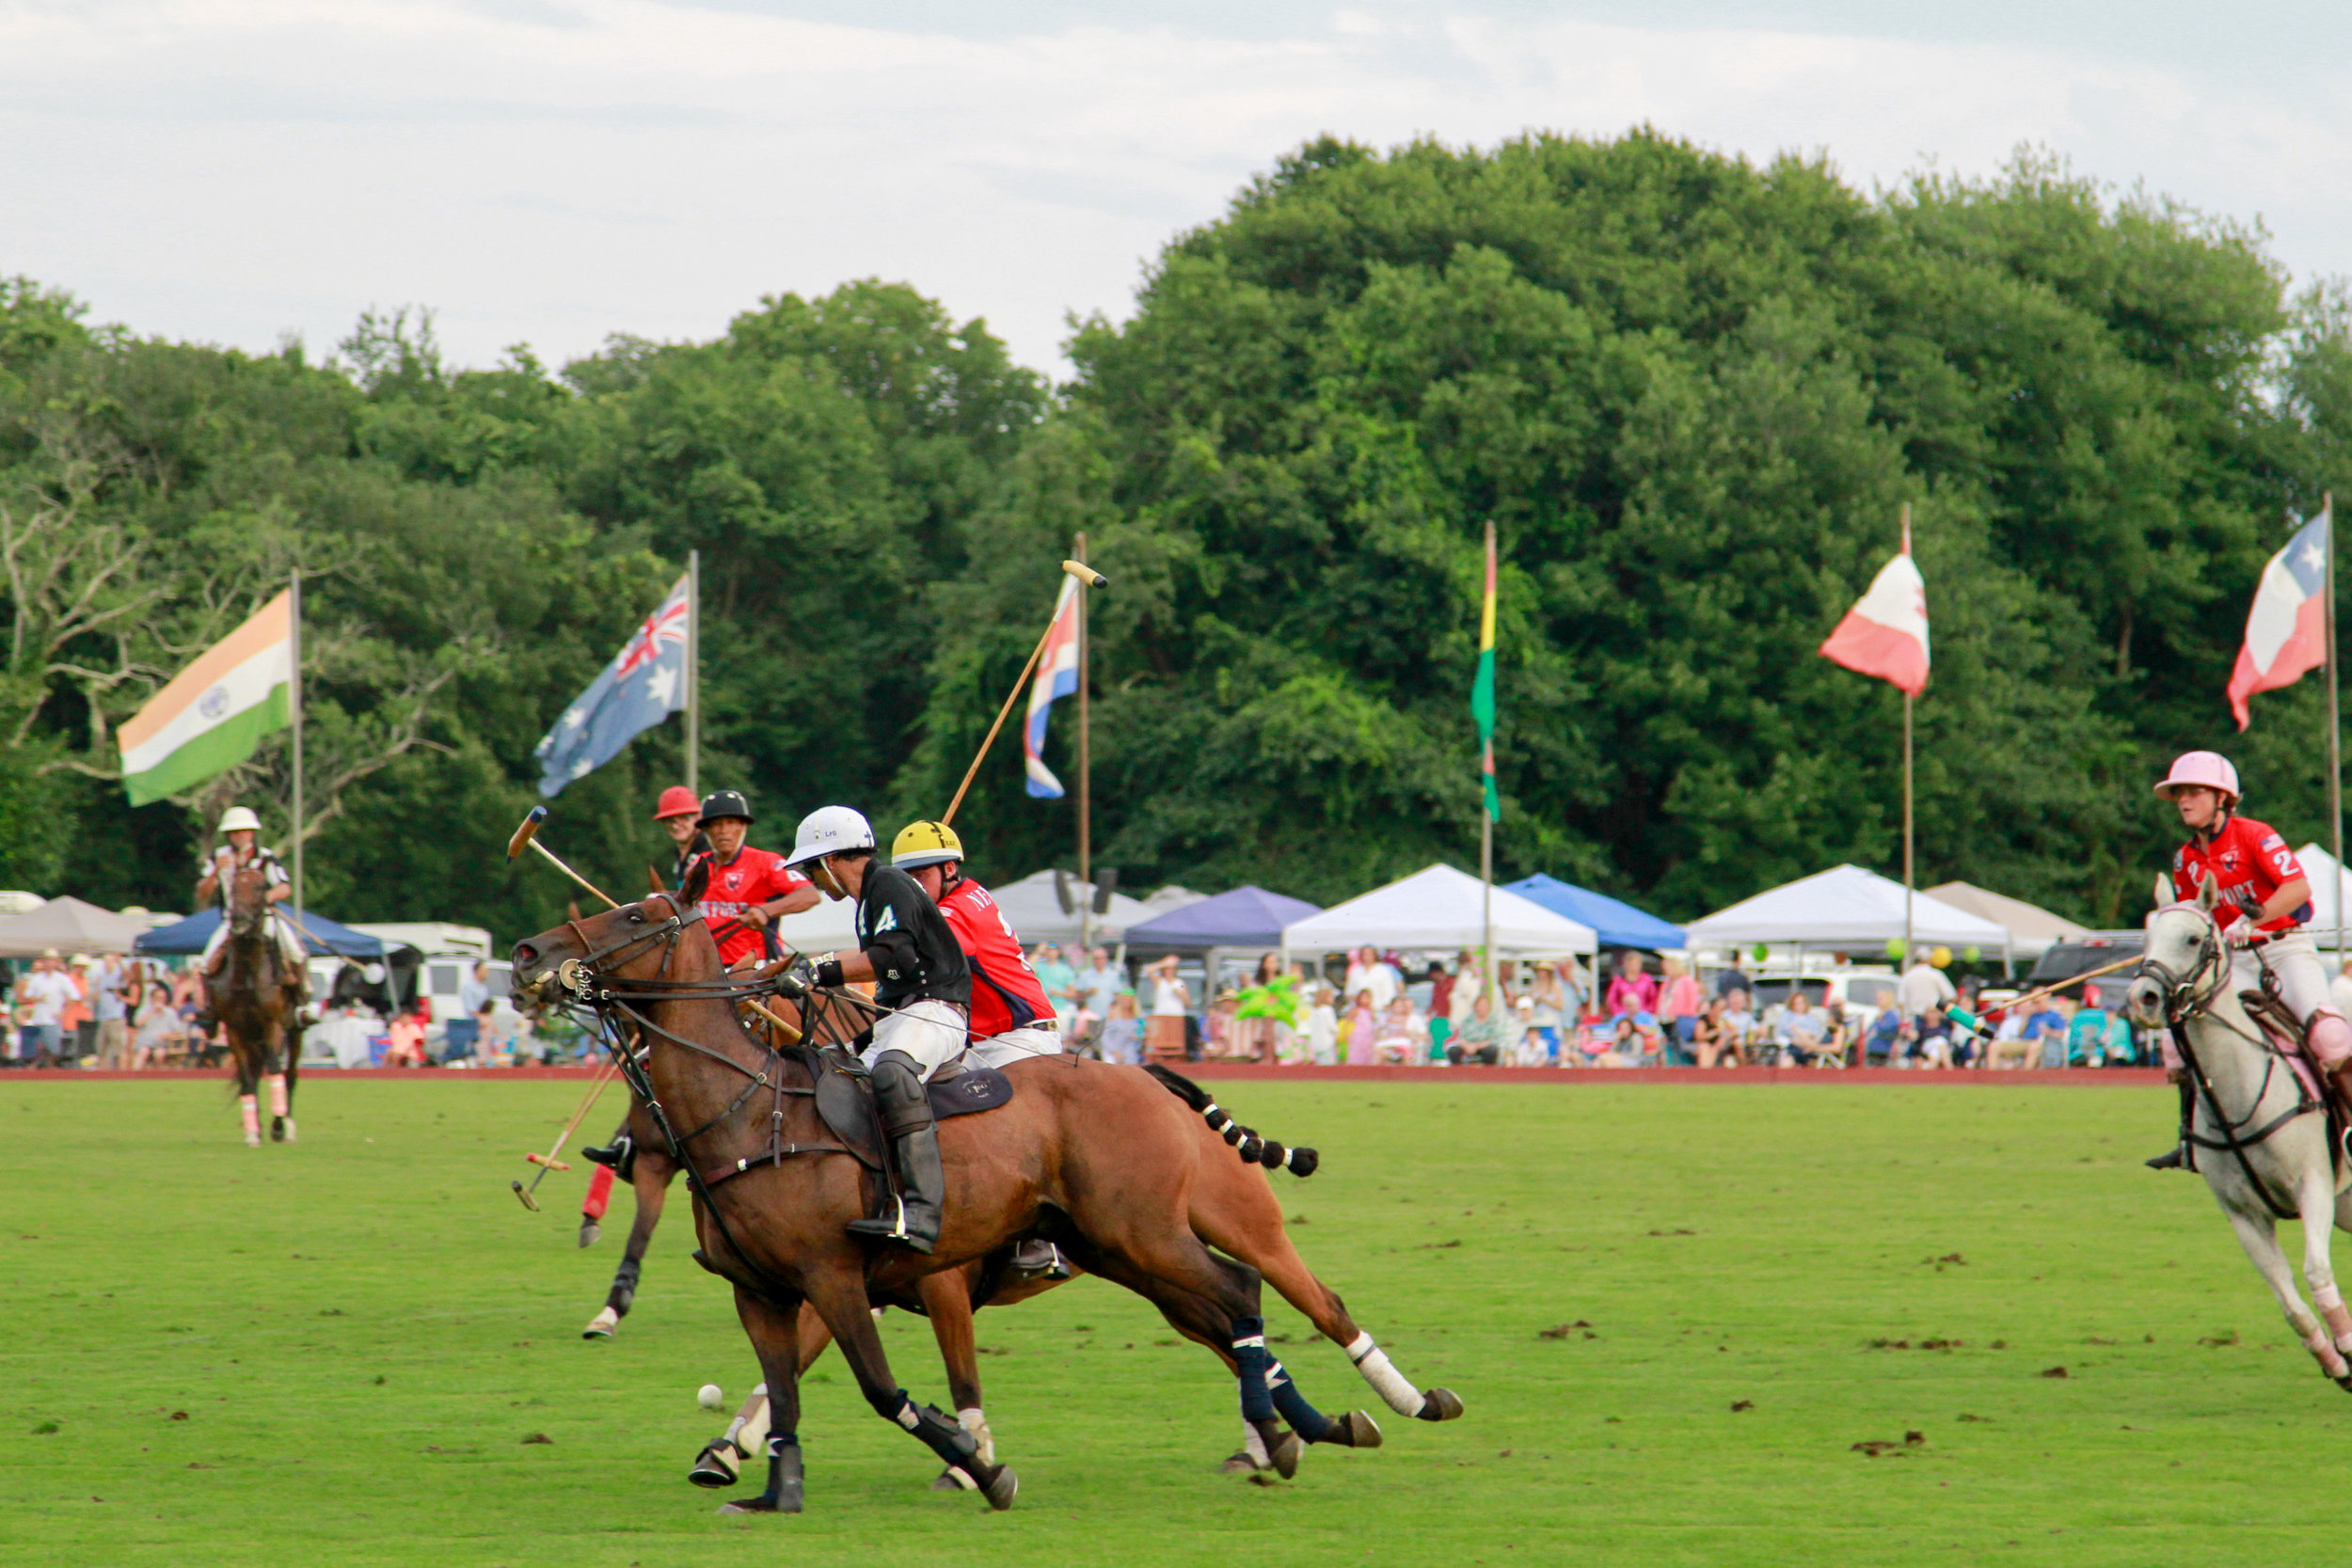 Newport Polo Series - guide to Newport, Rhode Island